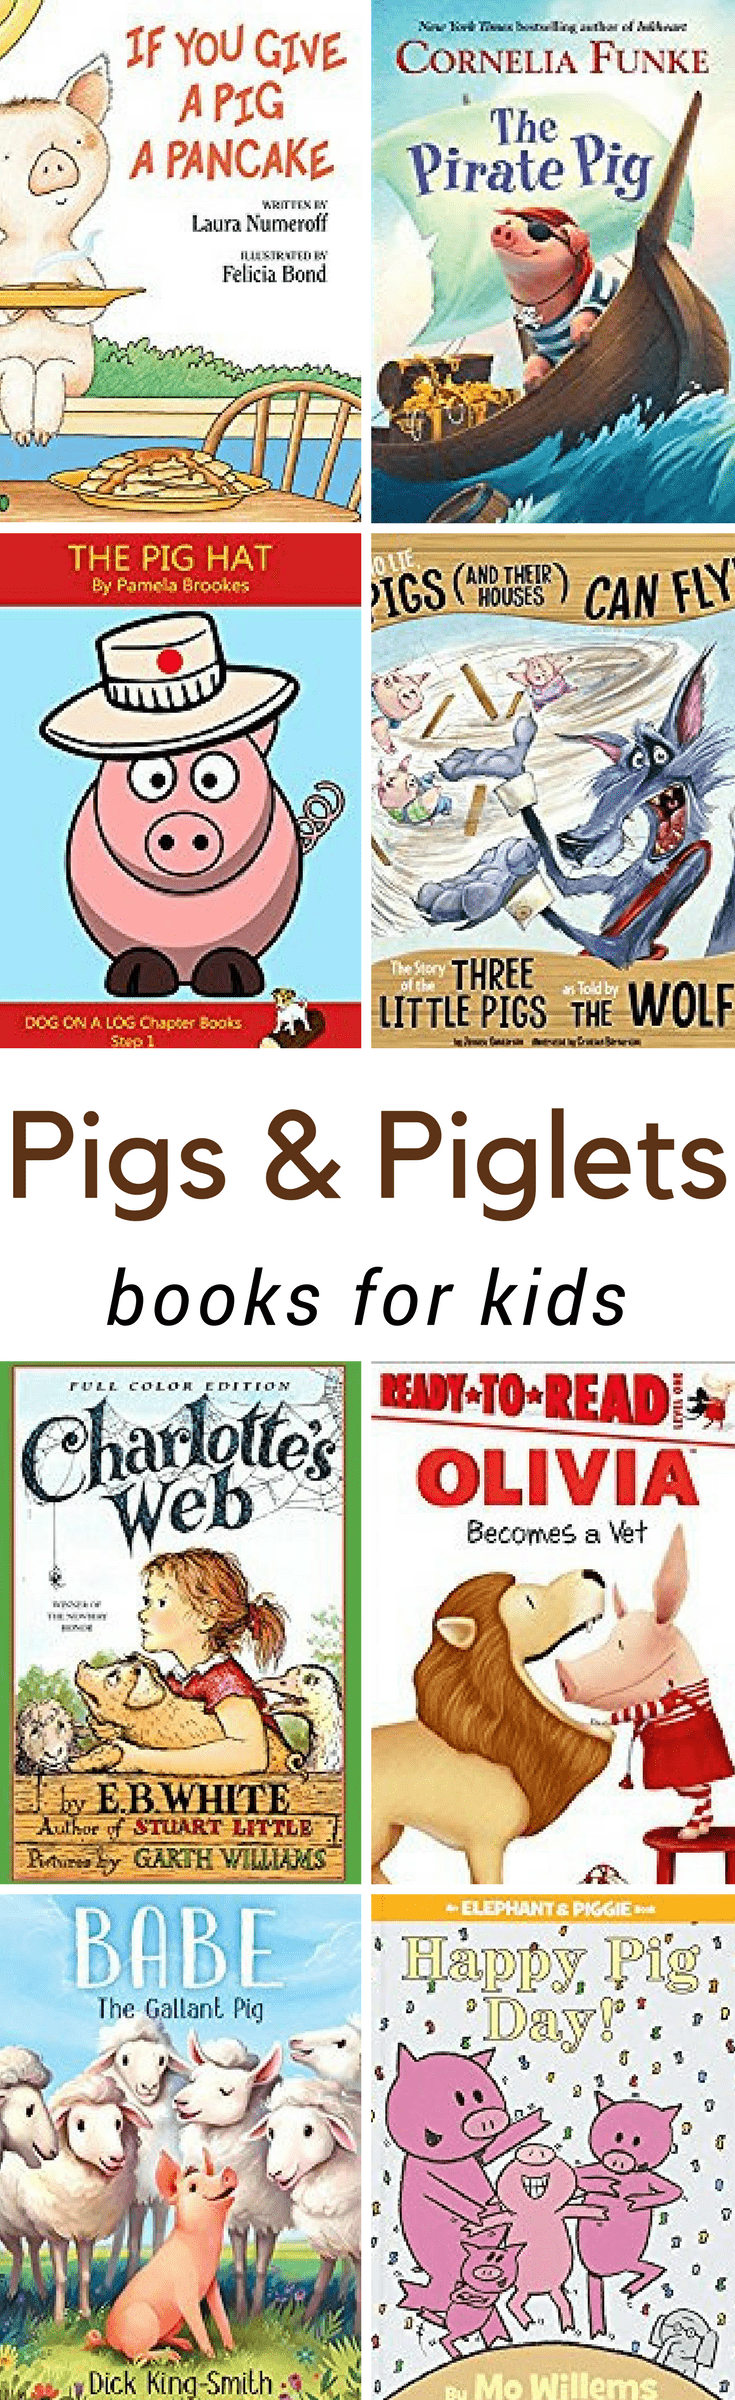 From cute stories to scientific education, these Pig Books for Kids are sure to help you as you and your children learn about farm animals. These books will help you teach your kids everything there is to know about adorable piglets and pigs.